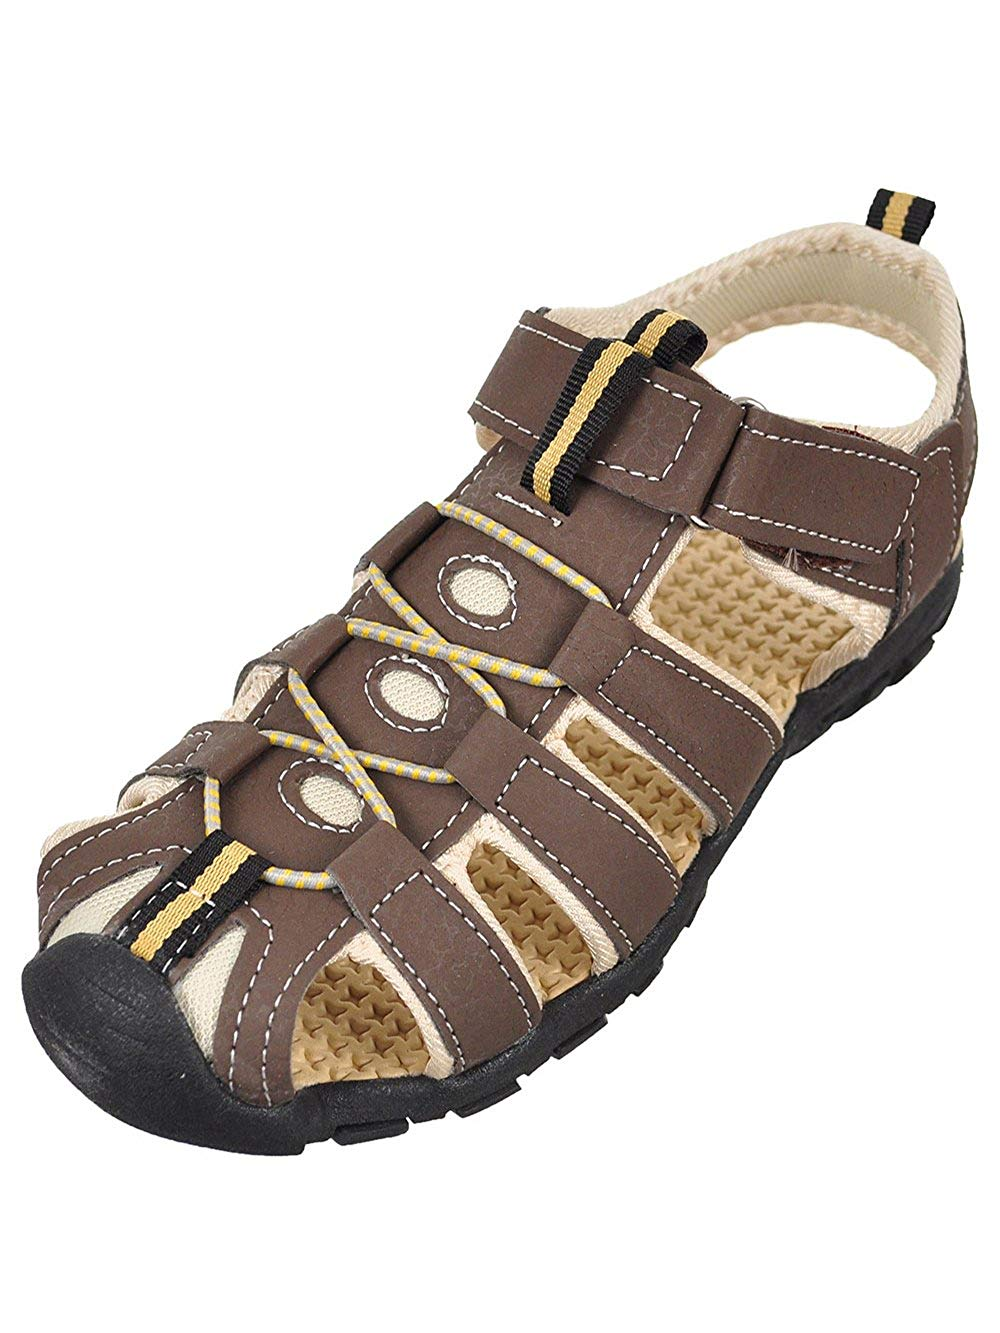 6cdc3c699b0e Get Quotations · Rugged Bear Boys  Mountaineer Sport Sandals - Brown